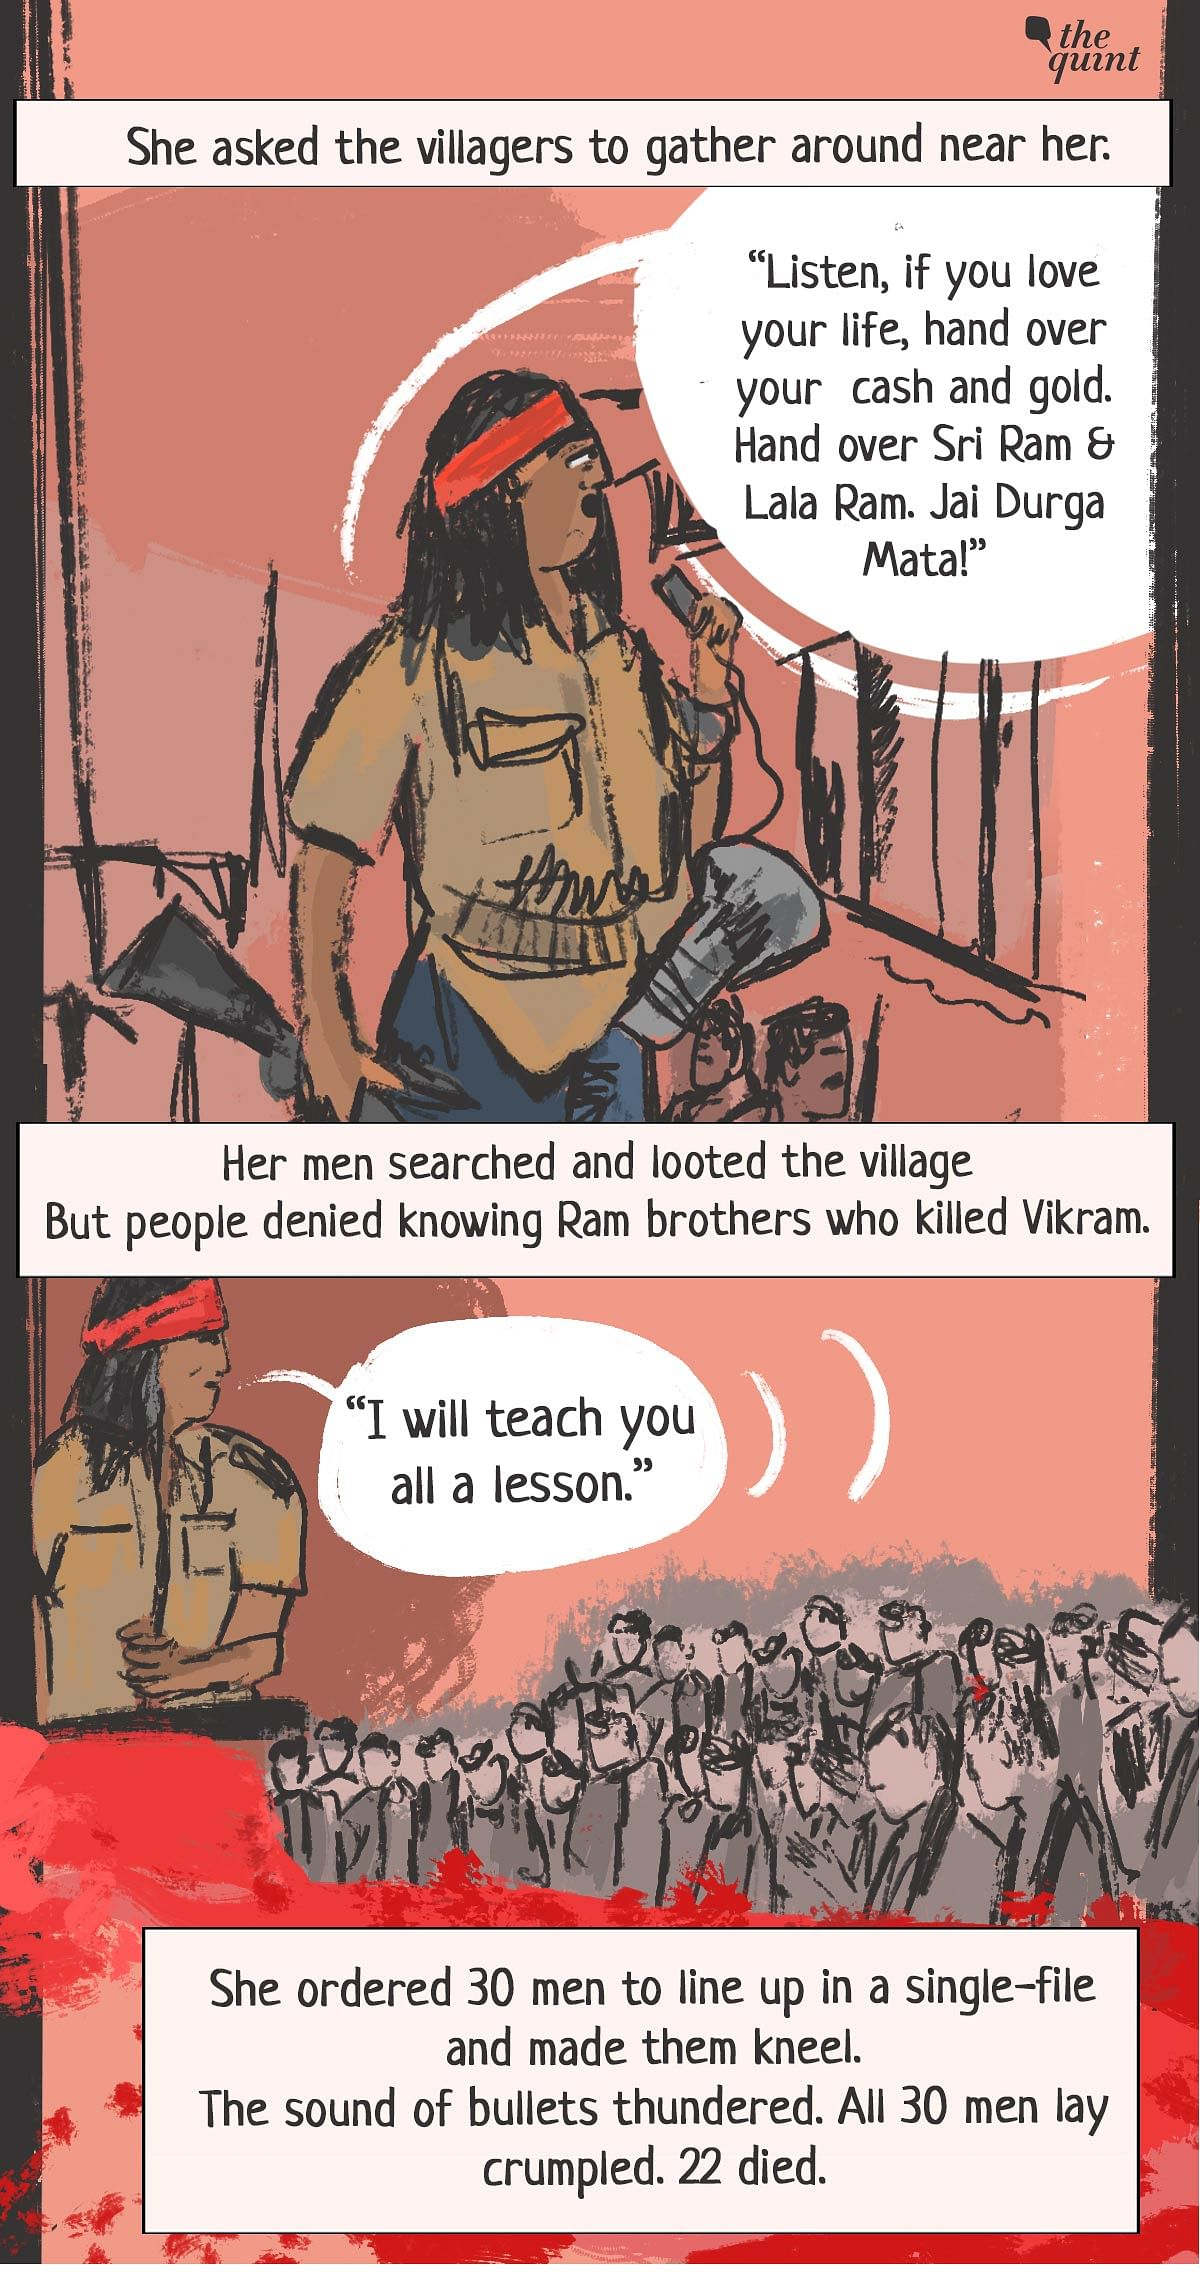 Graphic Novel: Remembering Anti-Caste Feminist Icon Phoolan Devi